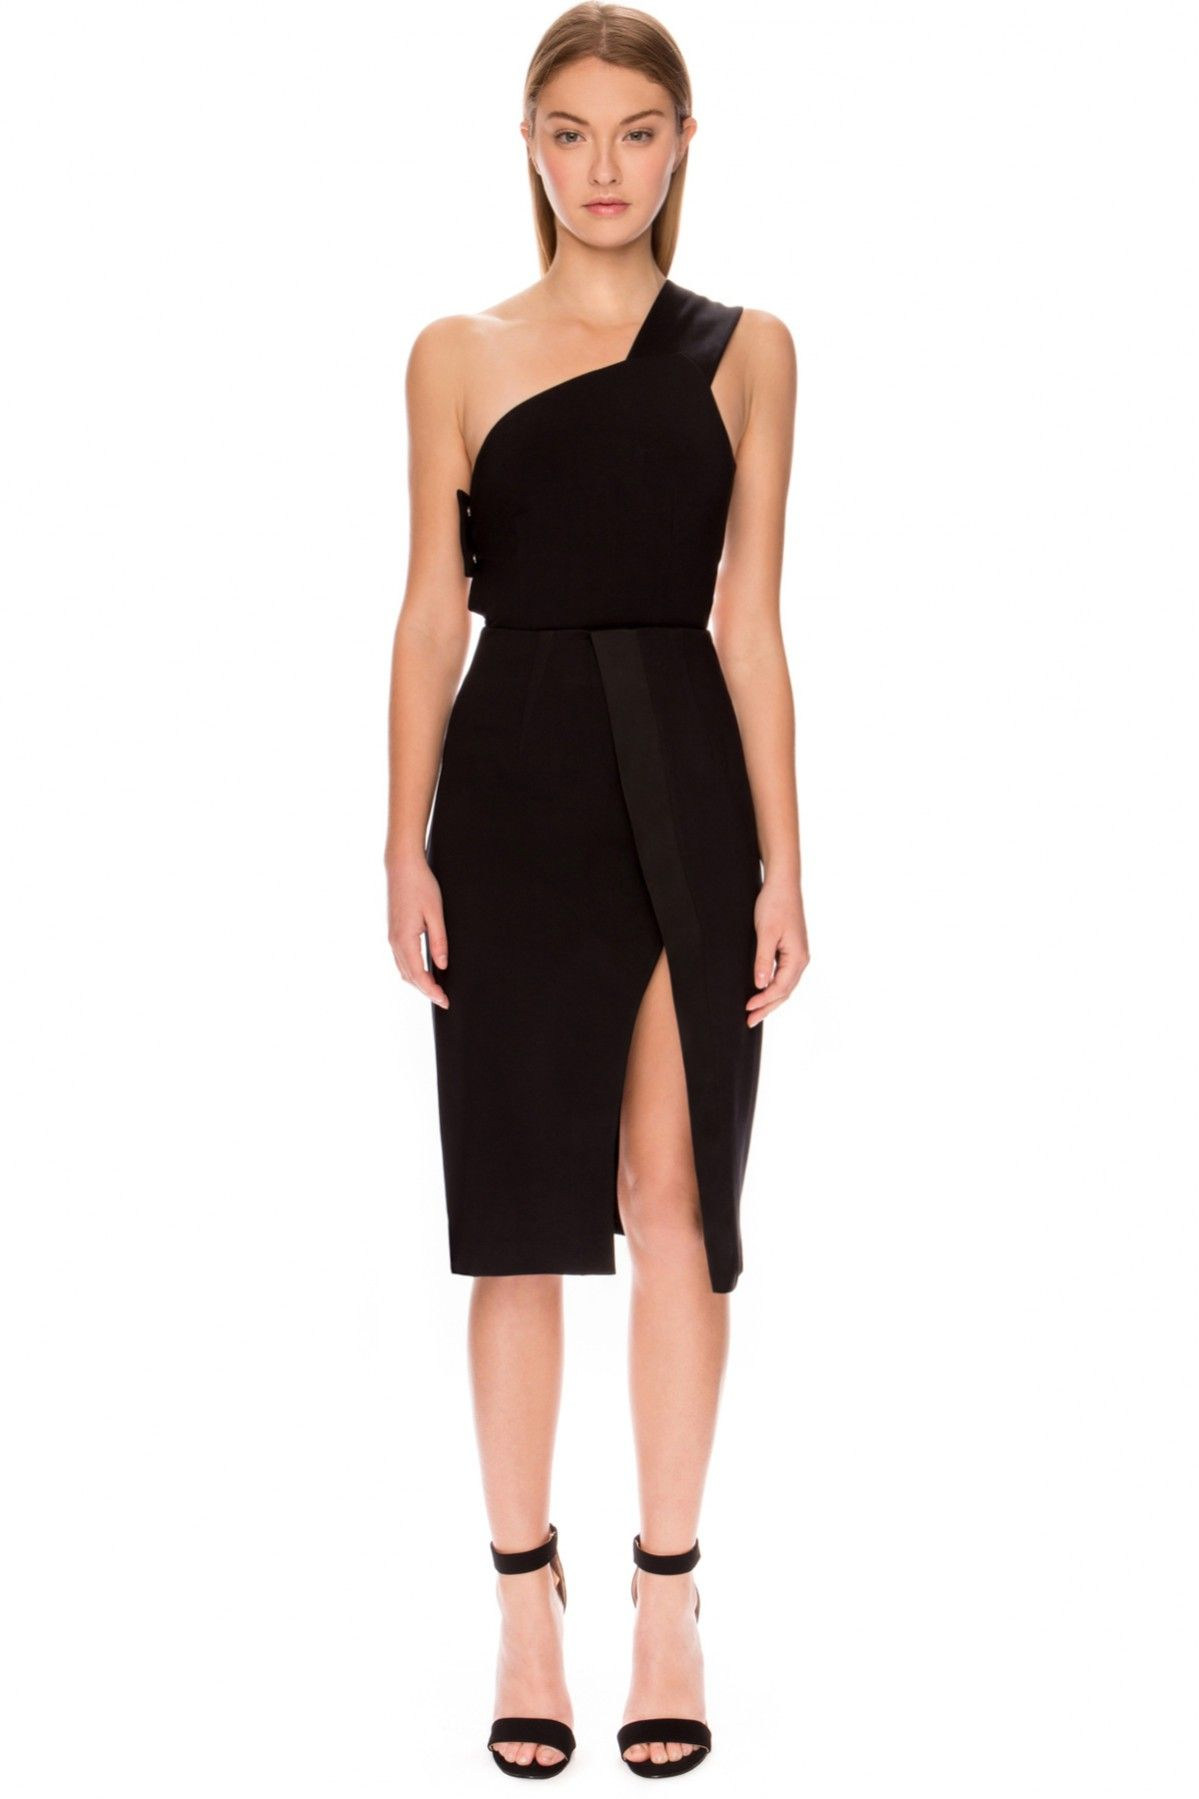 f4c0fa1f2b2e FINDERS KEEPERS PARTITION SKIRT BLACK - BNKR